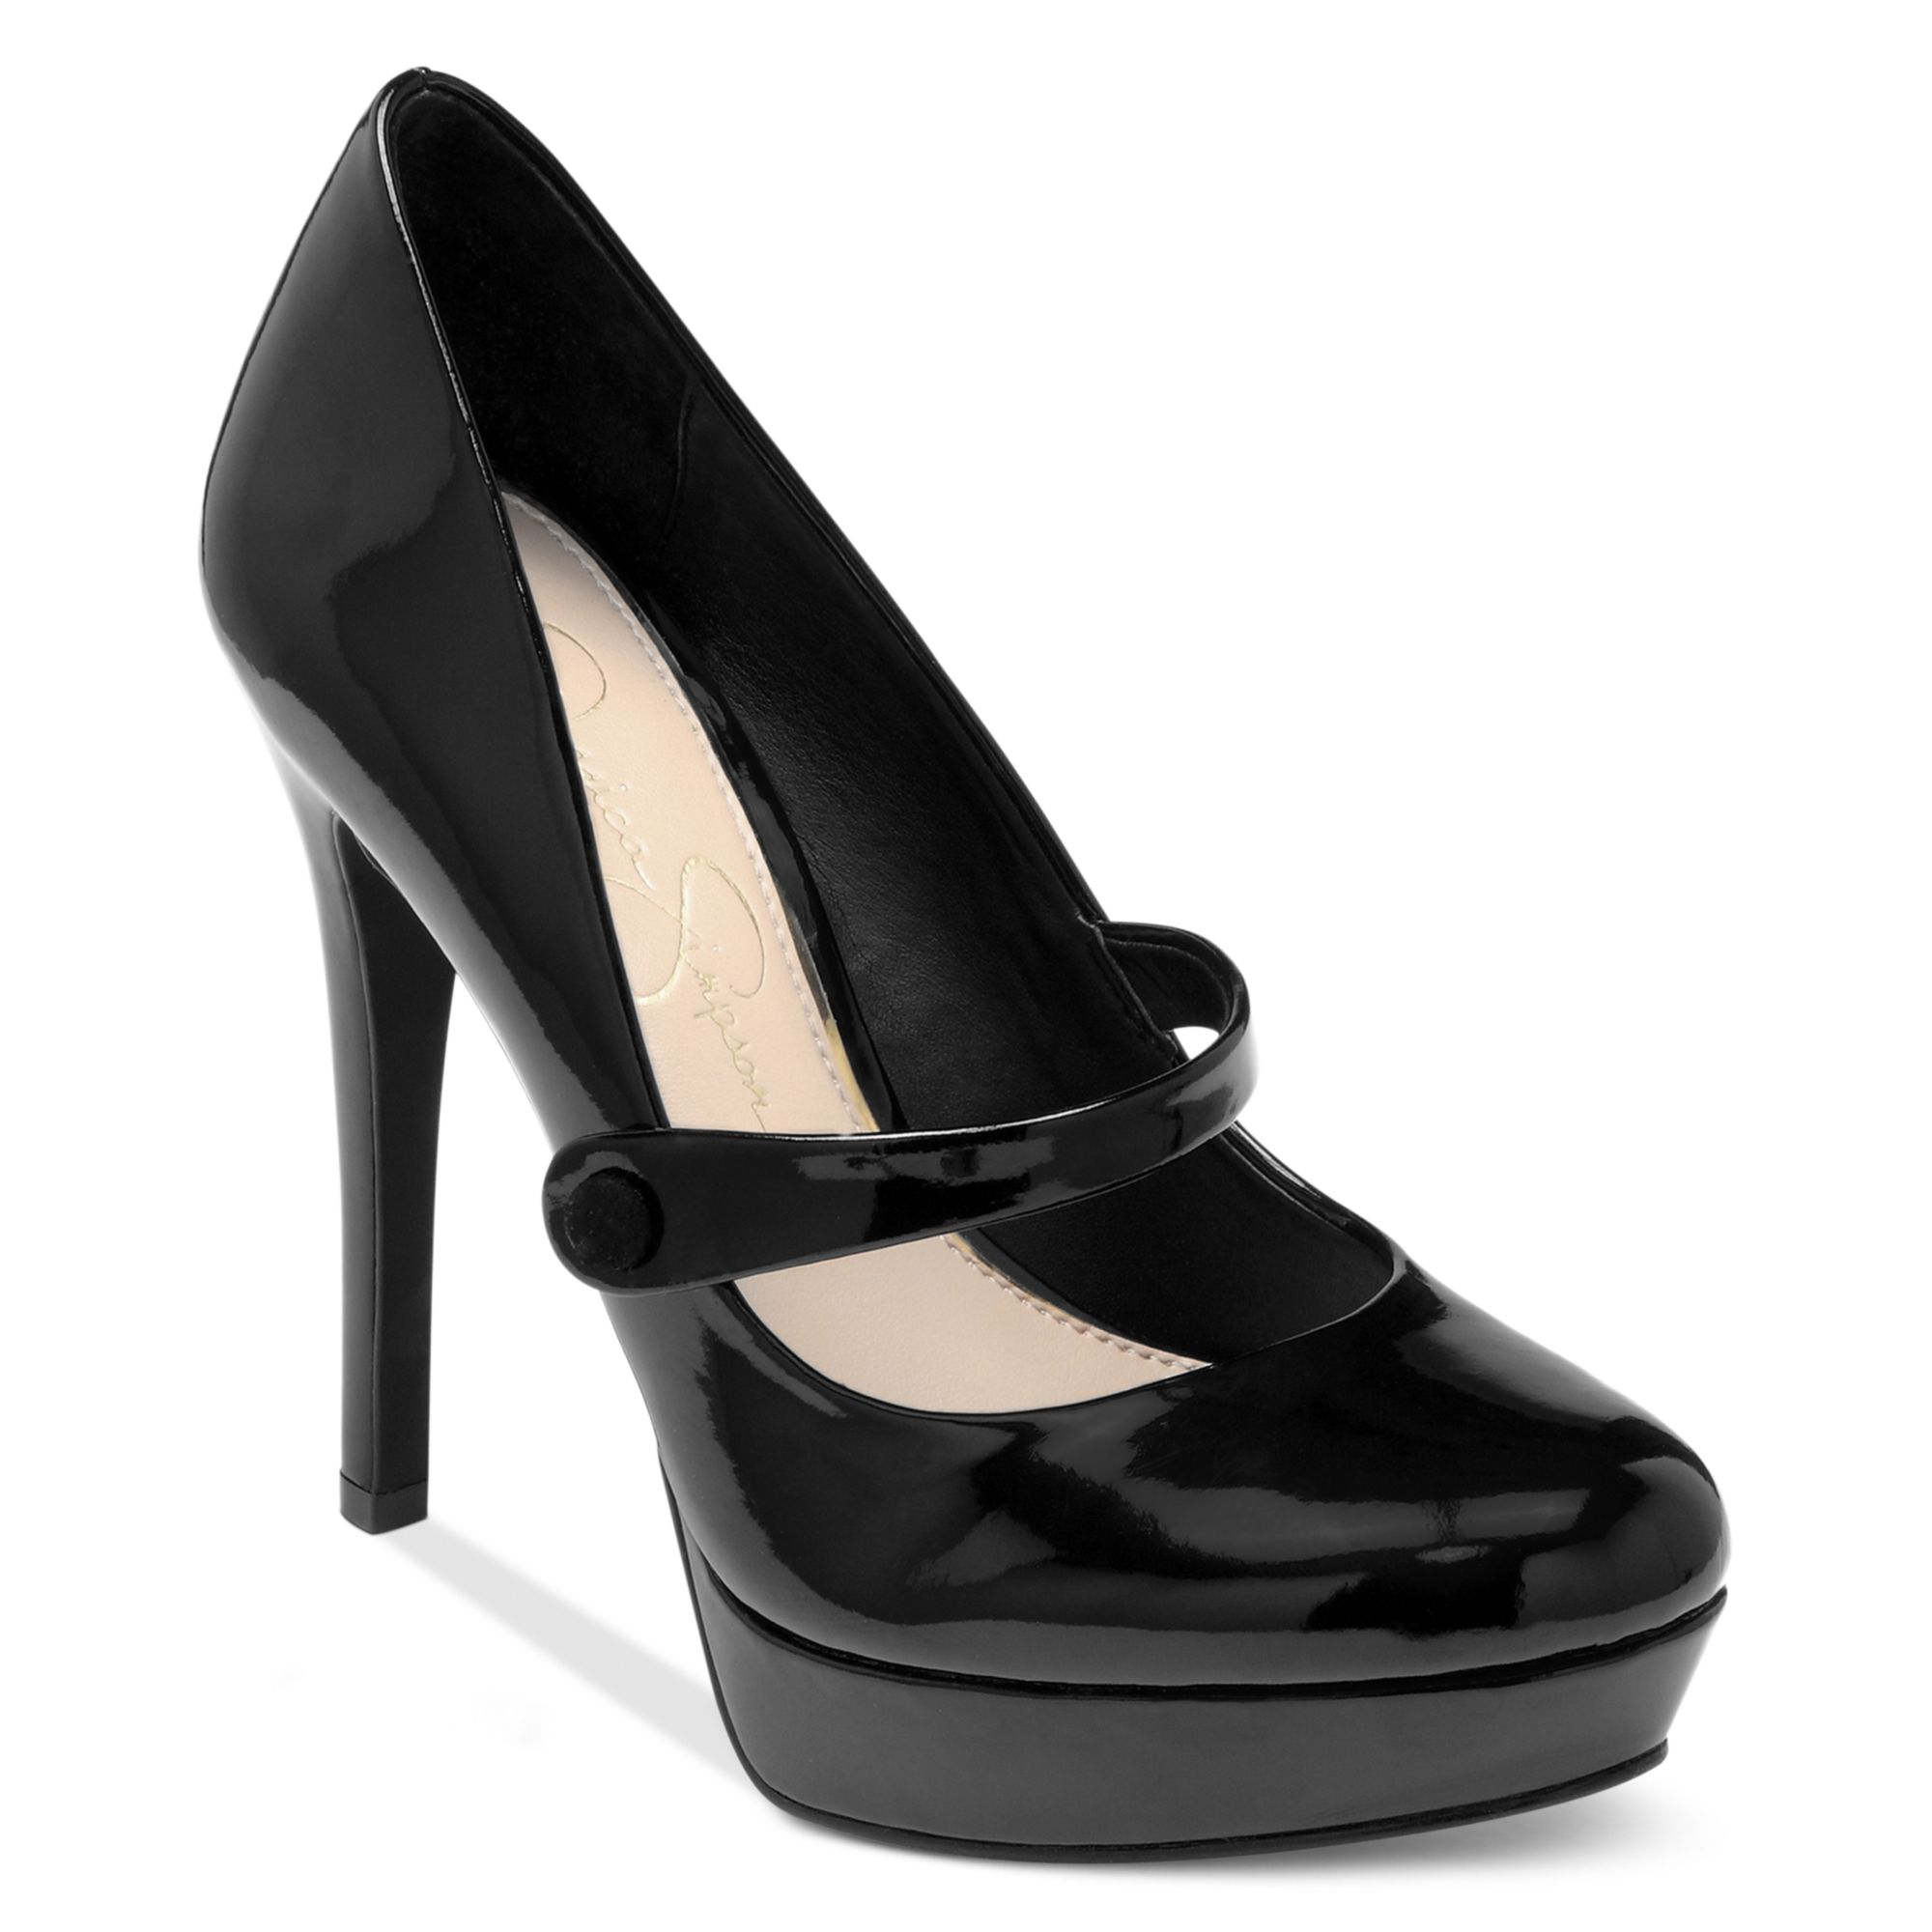 jessica simpson bogart mary jane platform pumps in black lyst. Black Bedroom Furniture Sets. Home Design Ideas